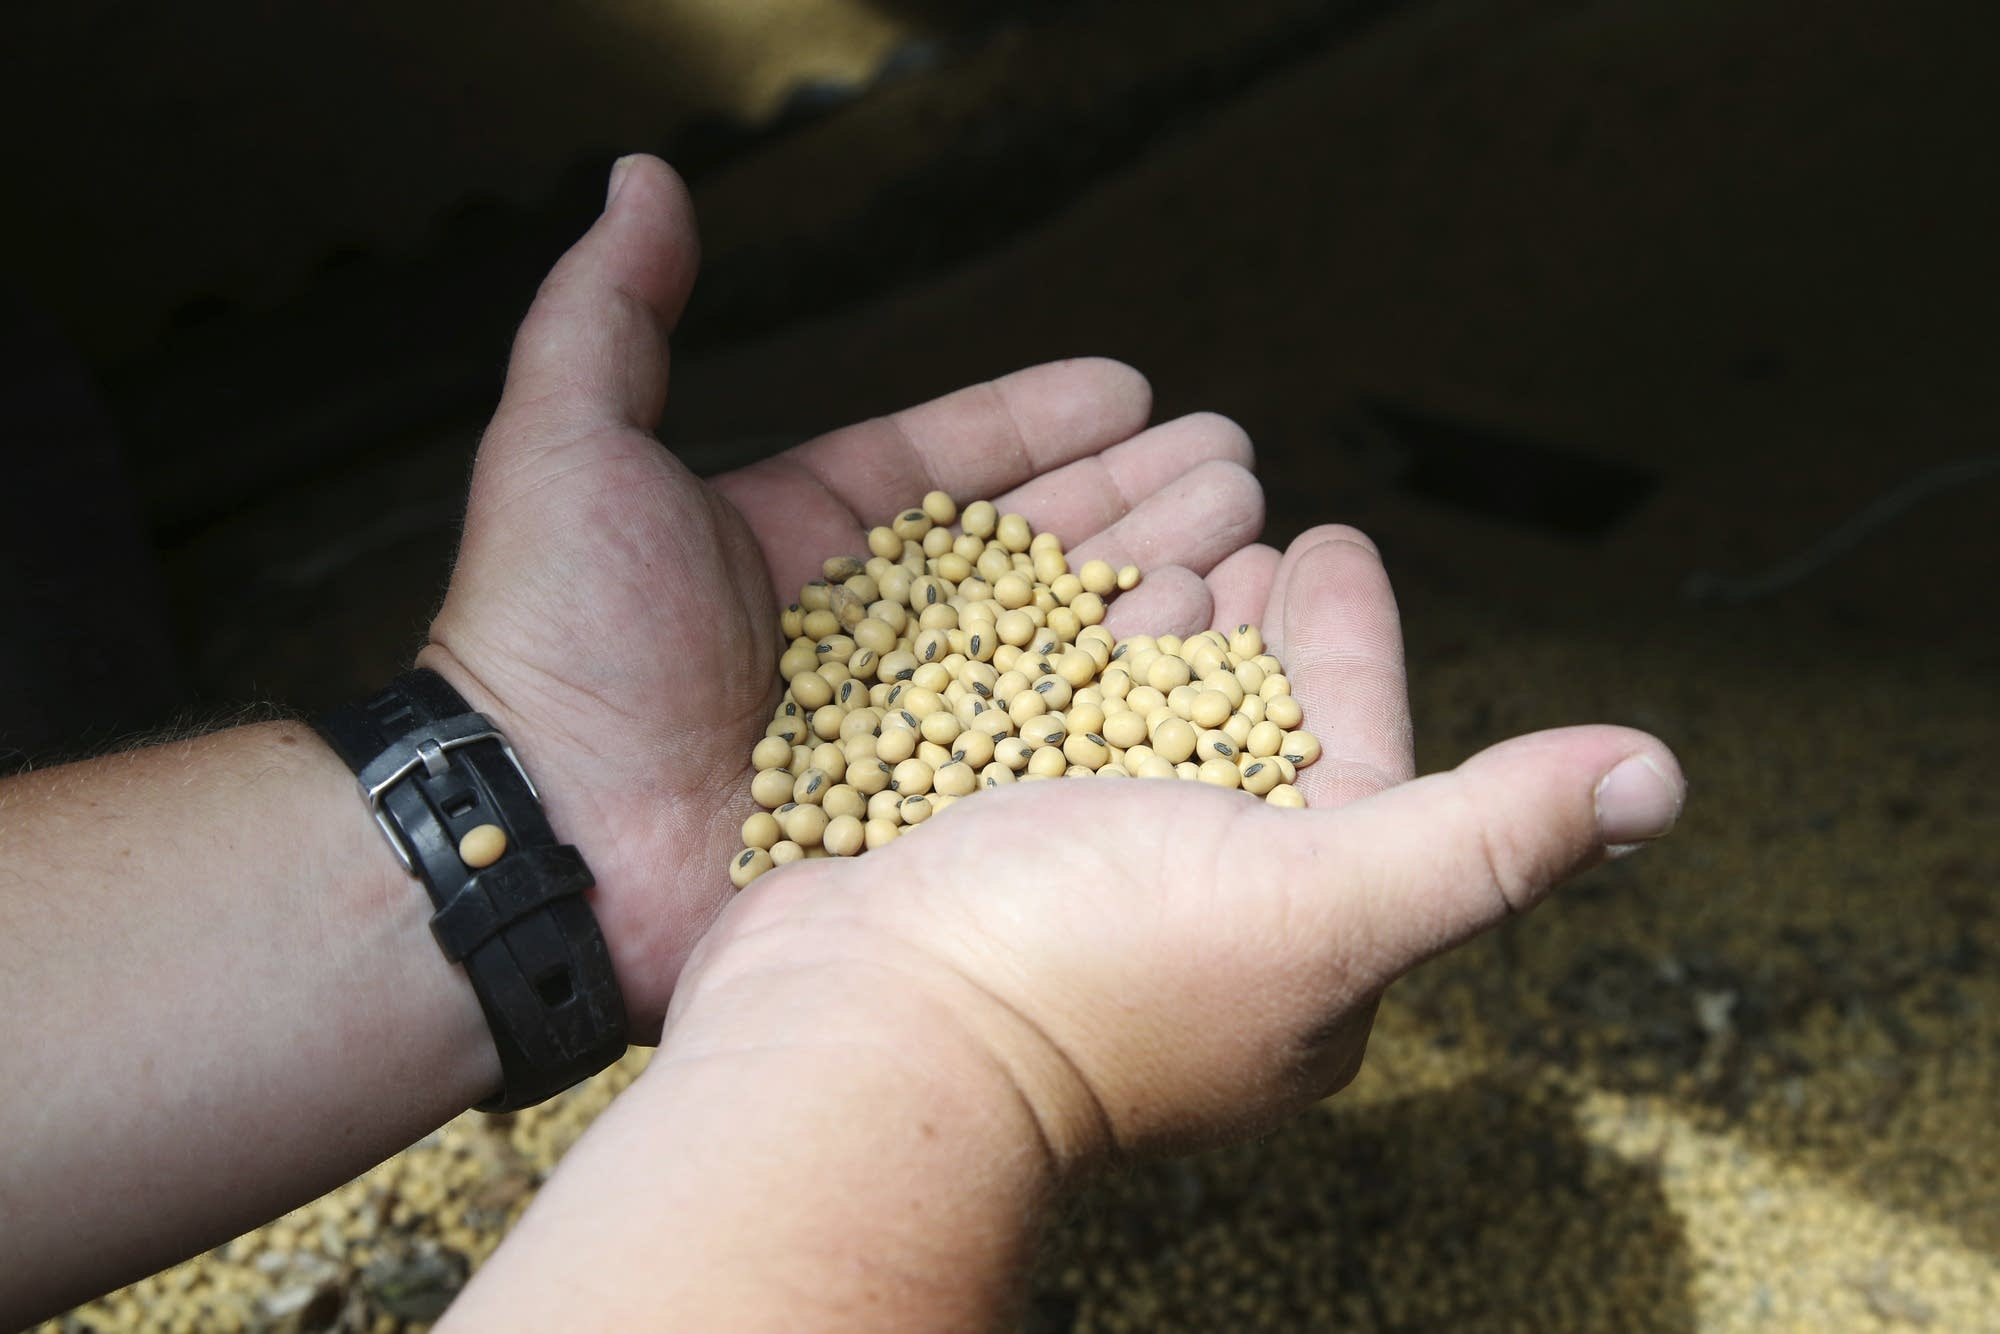 A farmer holds soybeans from the previous season's crop at his MN farm